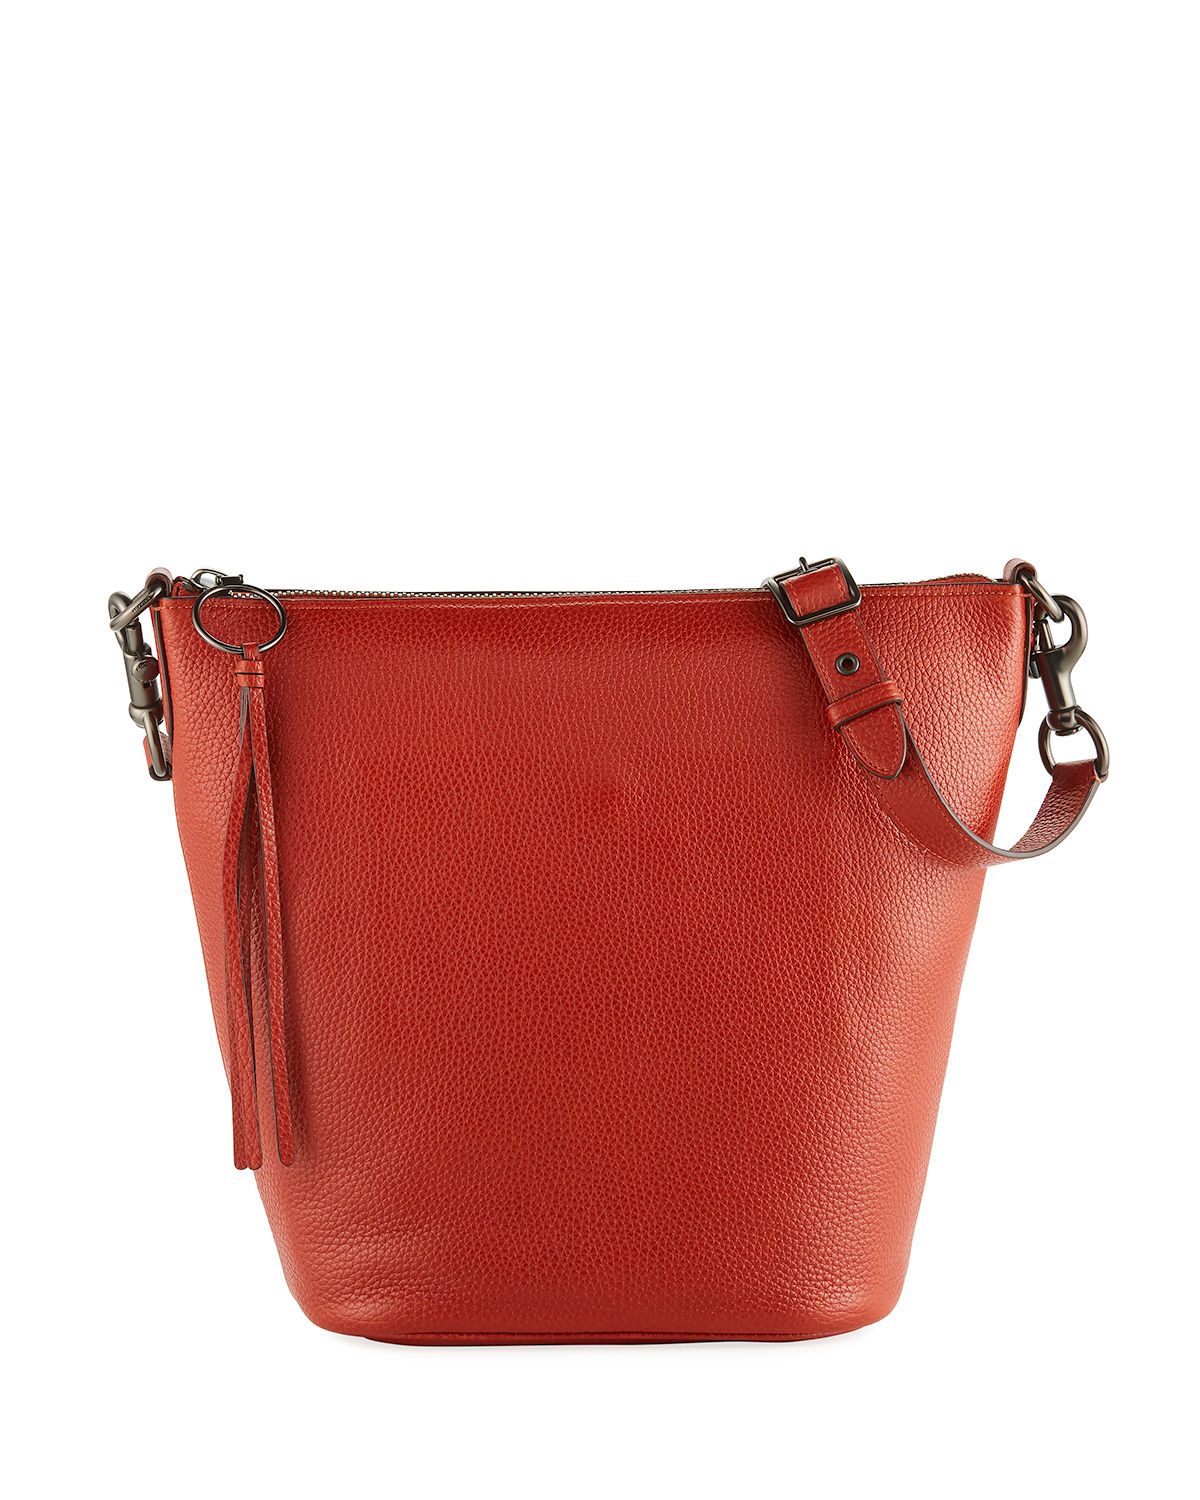 Glove-Tanned Pebbled Leather Bucket Bag